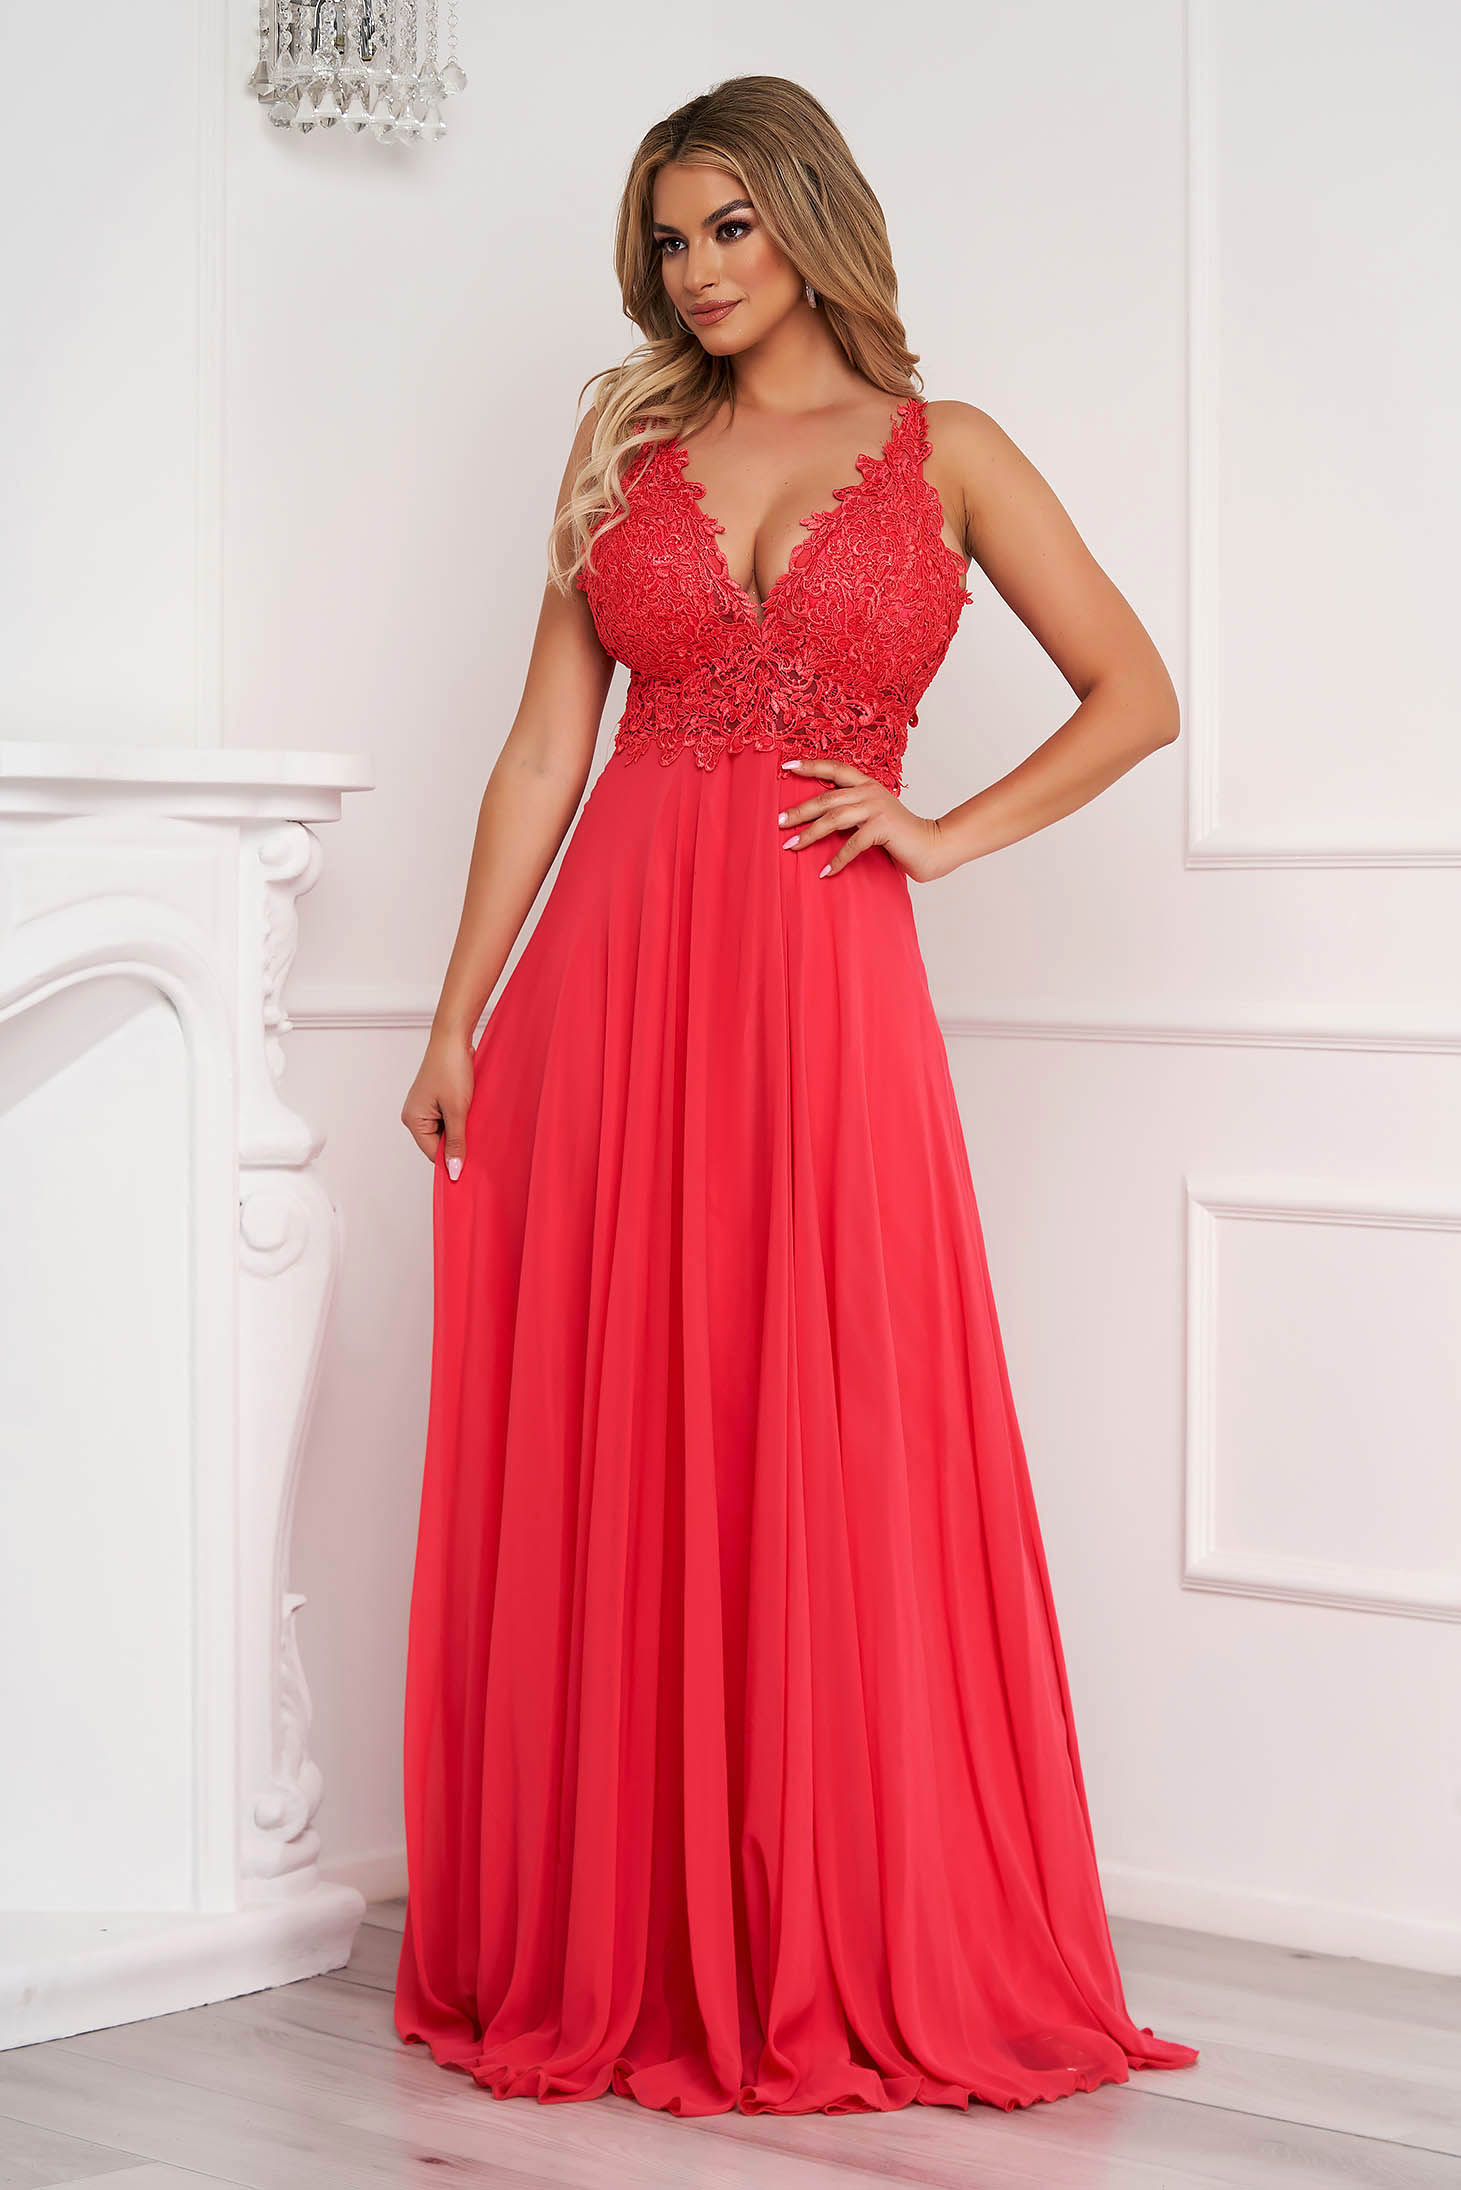 Coral dress long occasional from veil fabric bare back with push-up cups